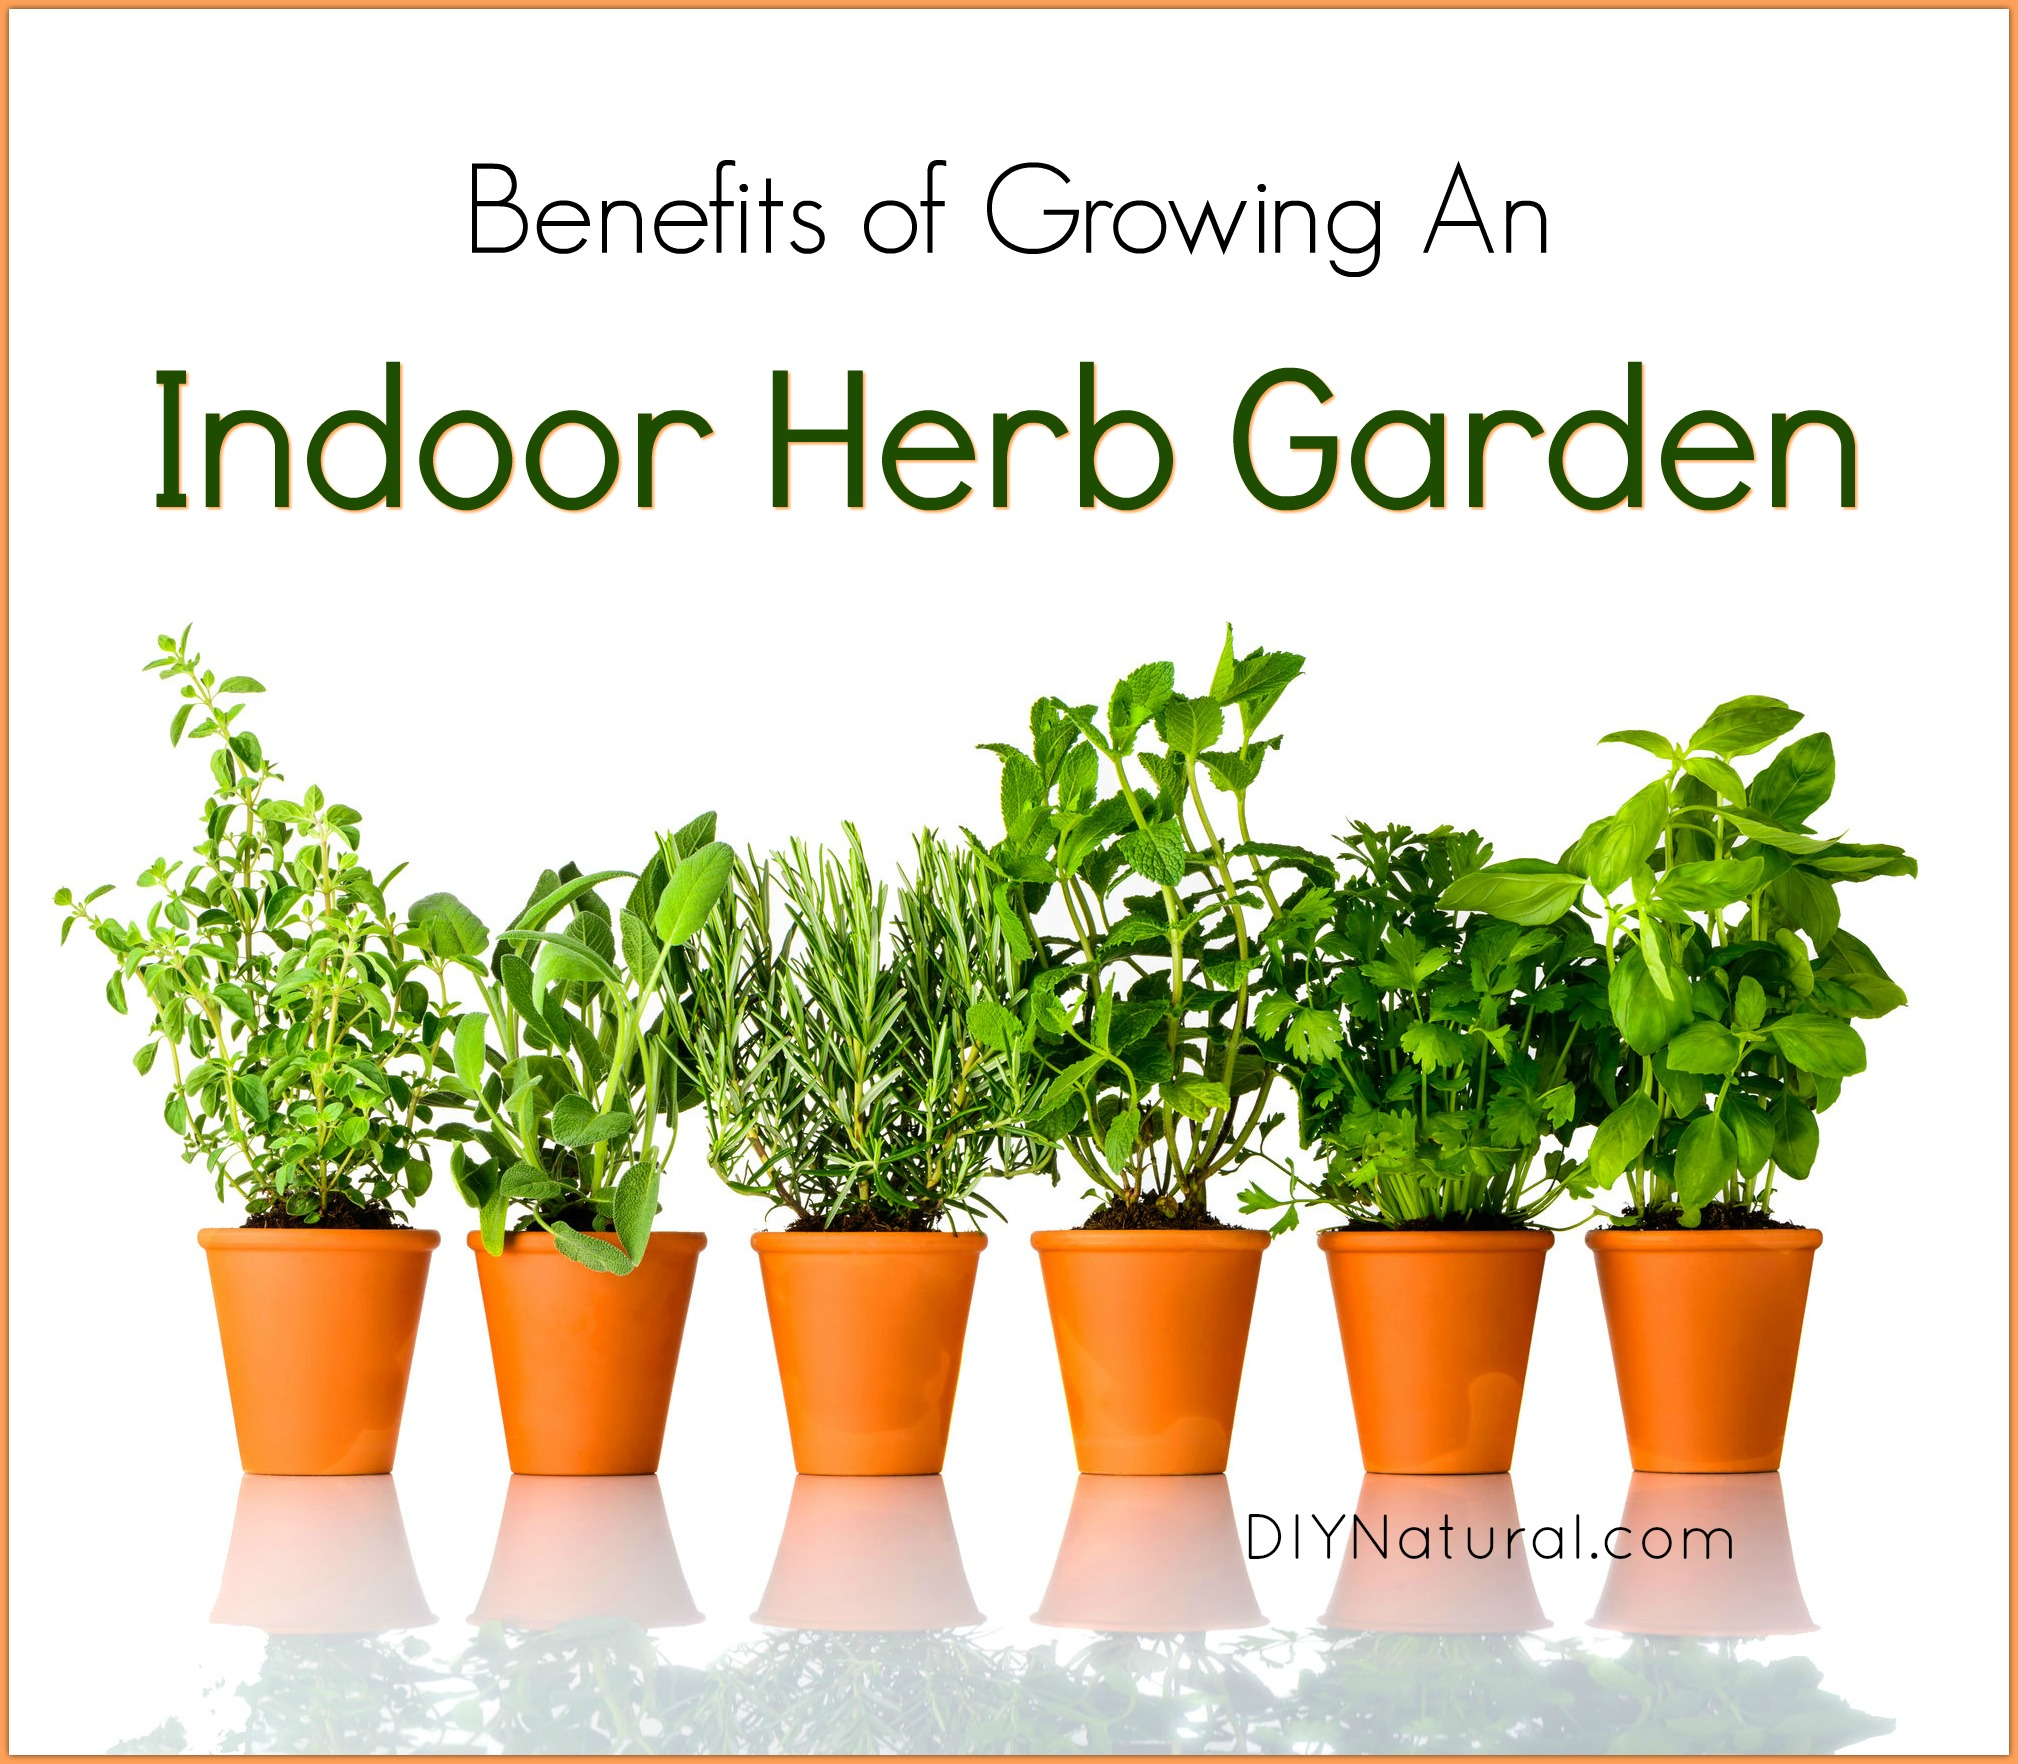 Indoor herb garden 5 reasons you should be growing herbs - Best herbs to grow indoors ...